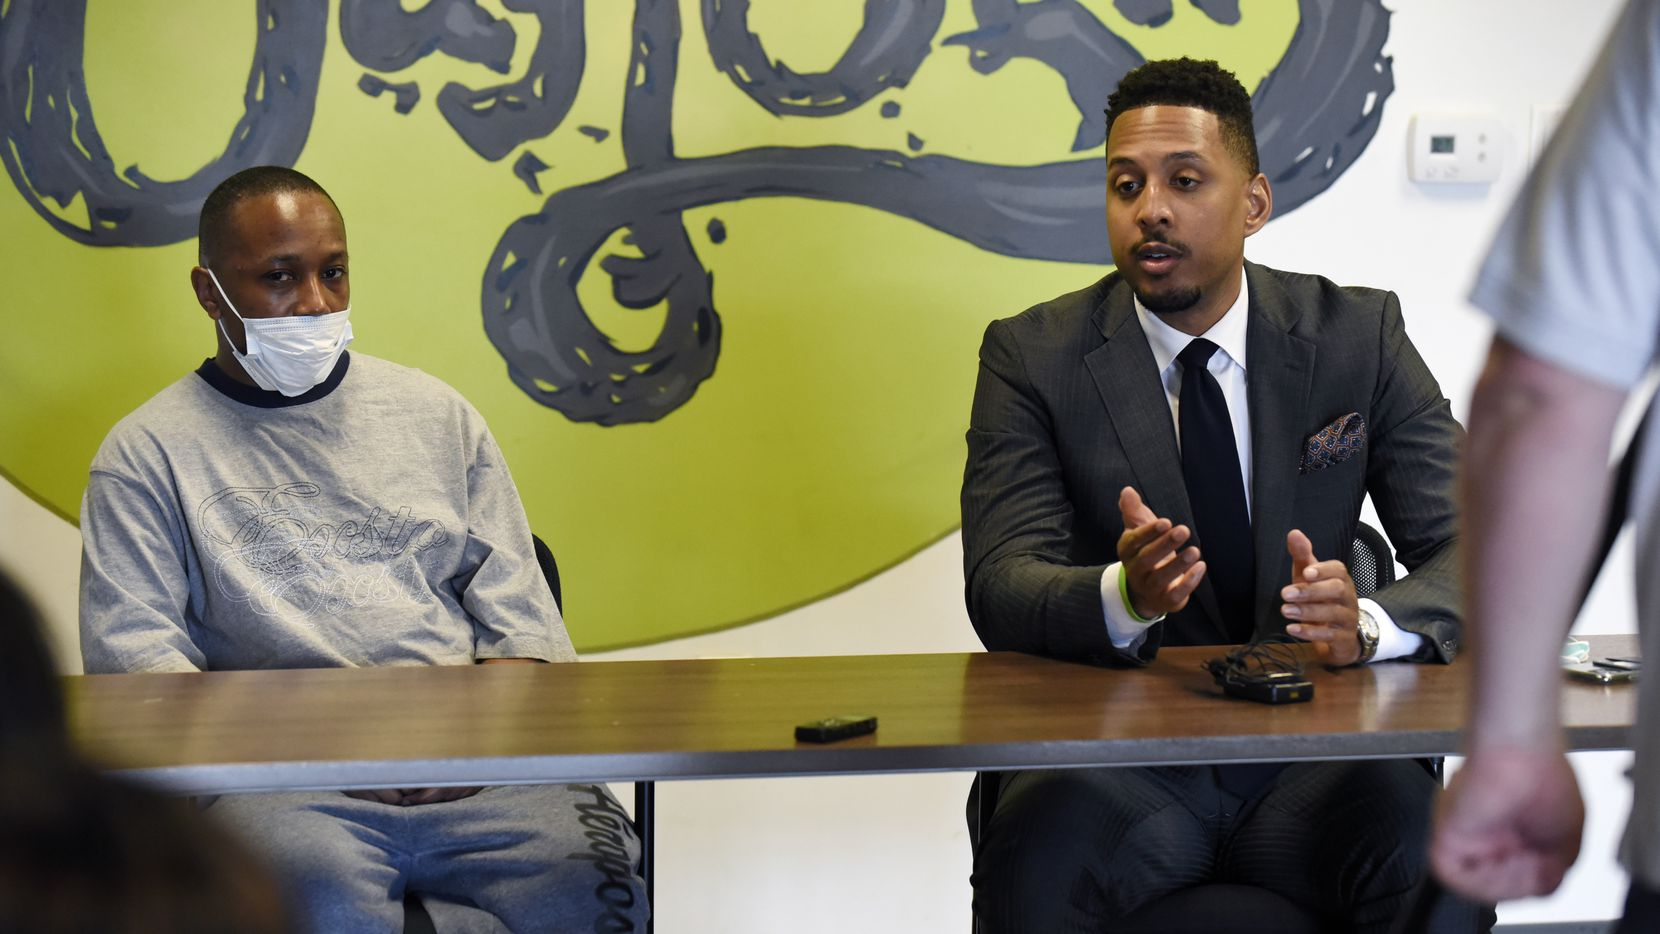 Alvin Ross, left, sits next to attorney Justin Moore, as he speaks about Alvin's sister Diamond Ross and the family's case against the Dallas Police Department, at the For Oak Cliff community offices in Dallas, Thursday June 25, 2020. Diamond Ross passed away in Dallas police custody in 2018. Ben Torres/Special Contributor